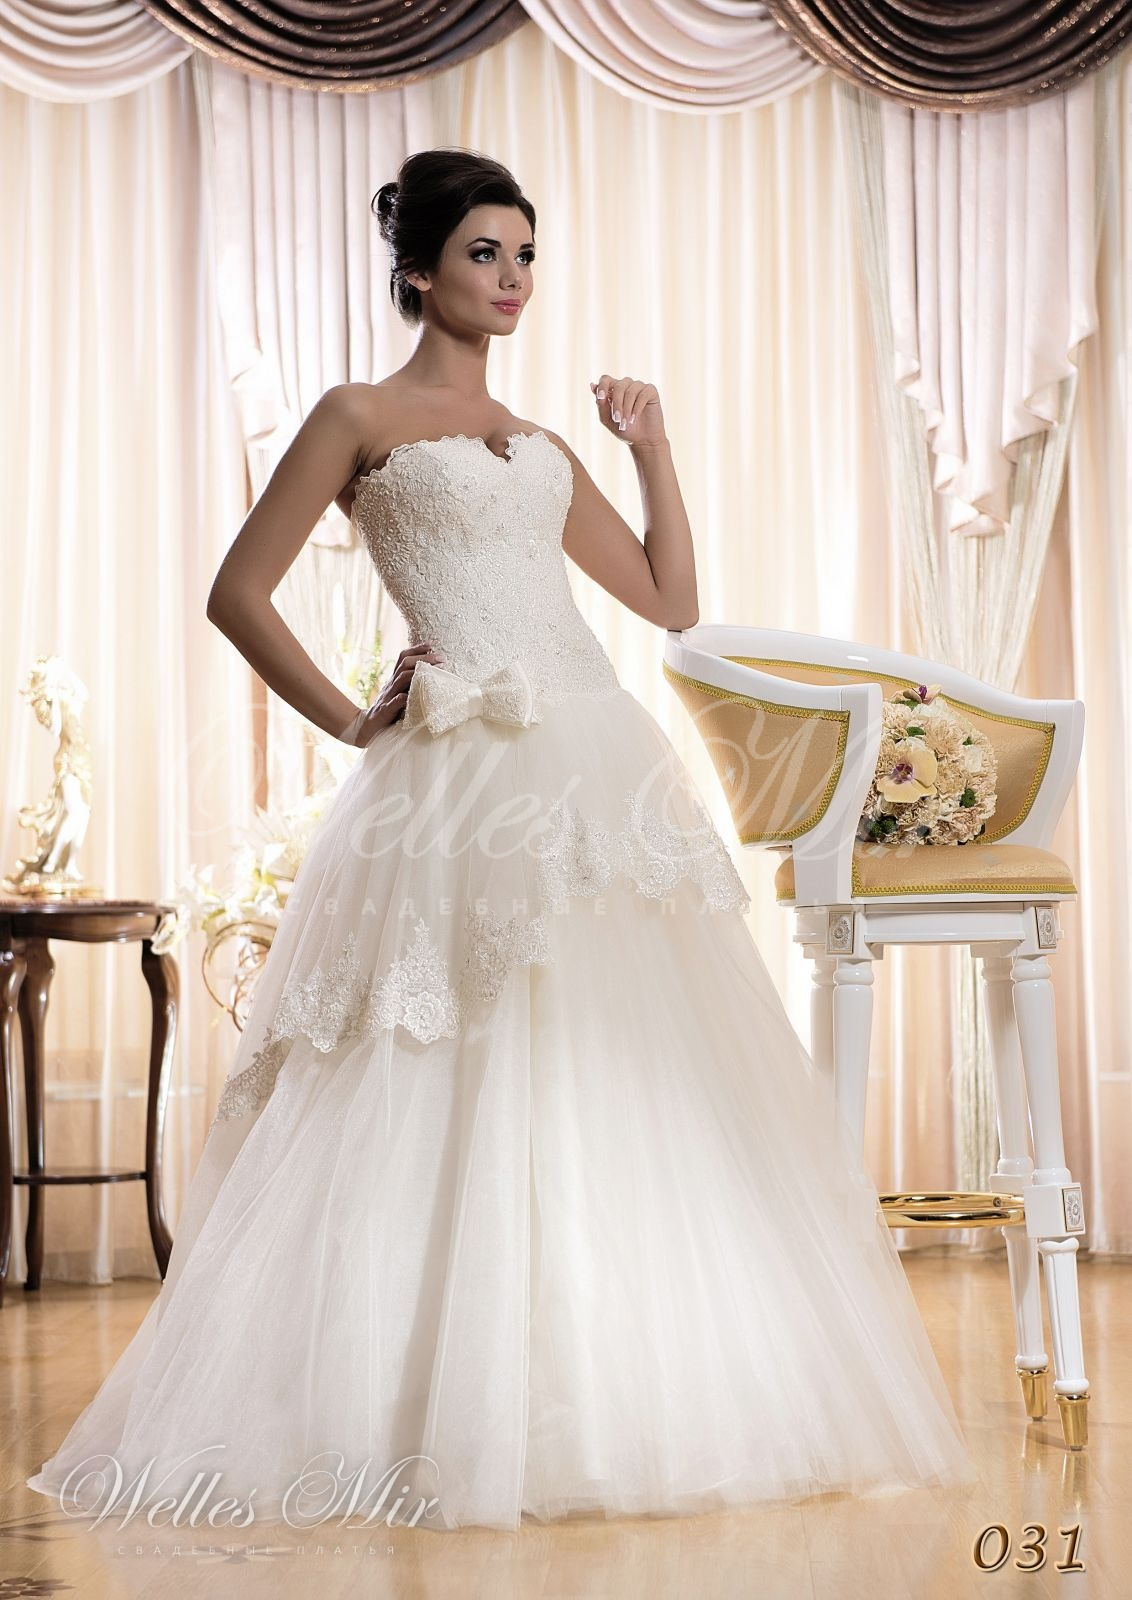 Wedding dresses 031